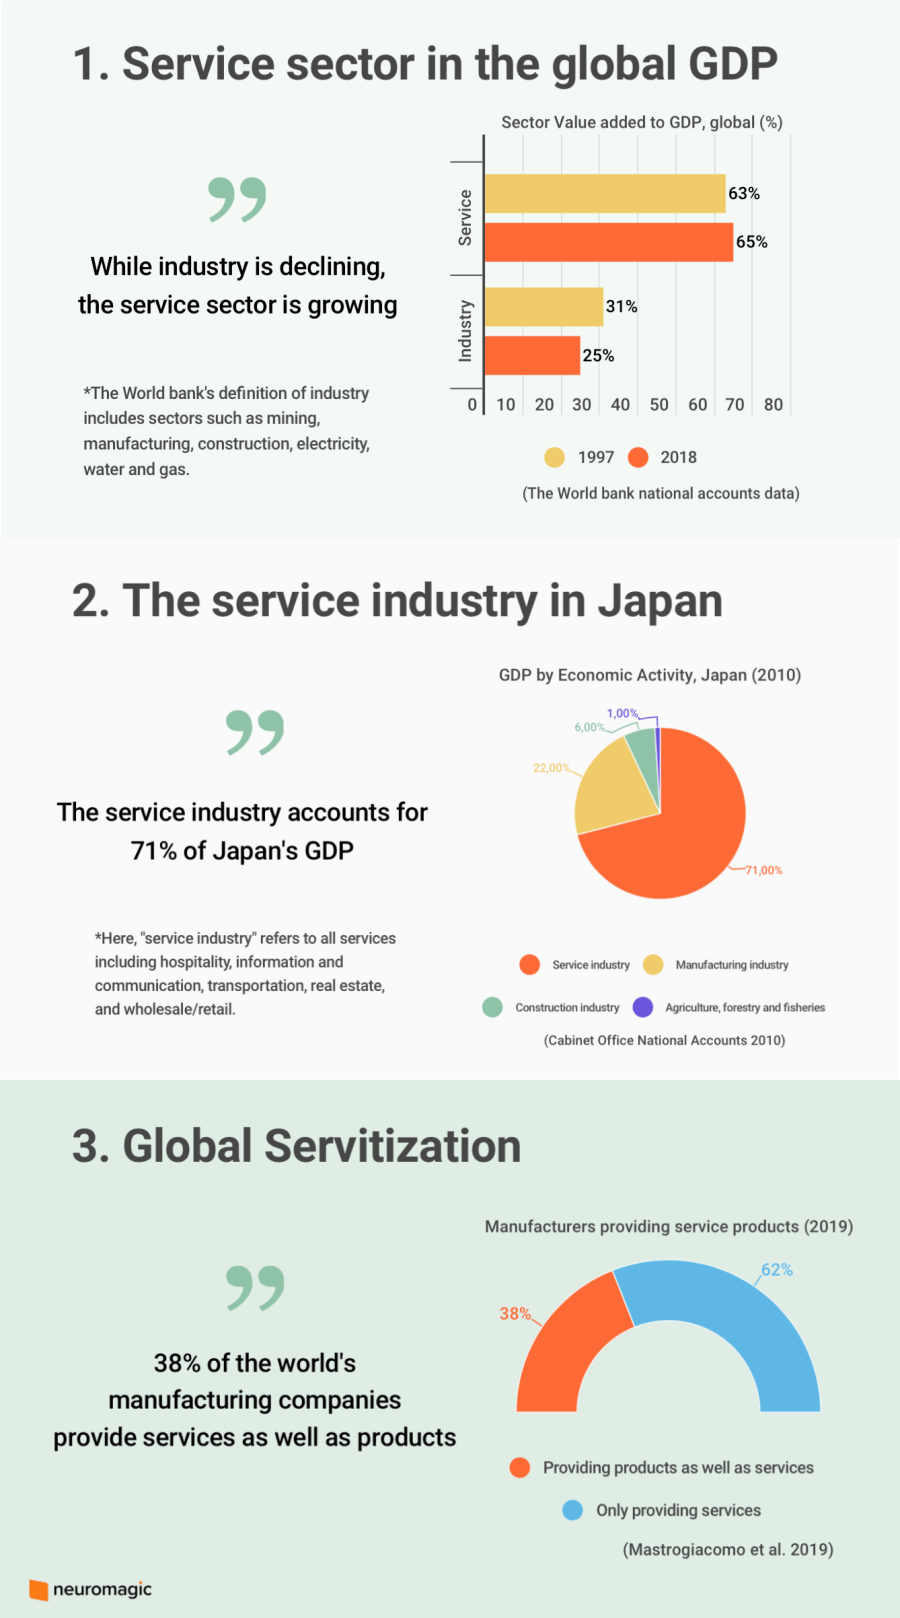 Service sector and servitization statistics.